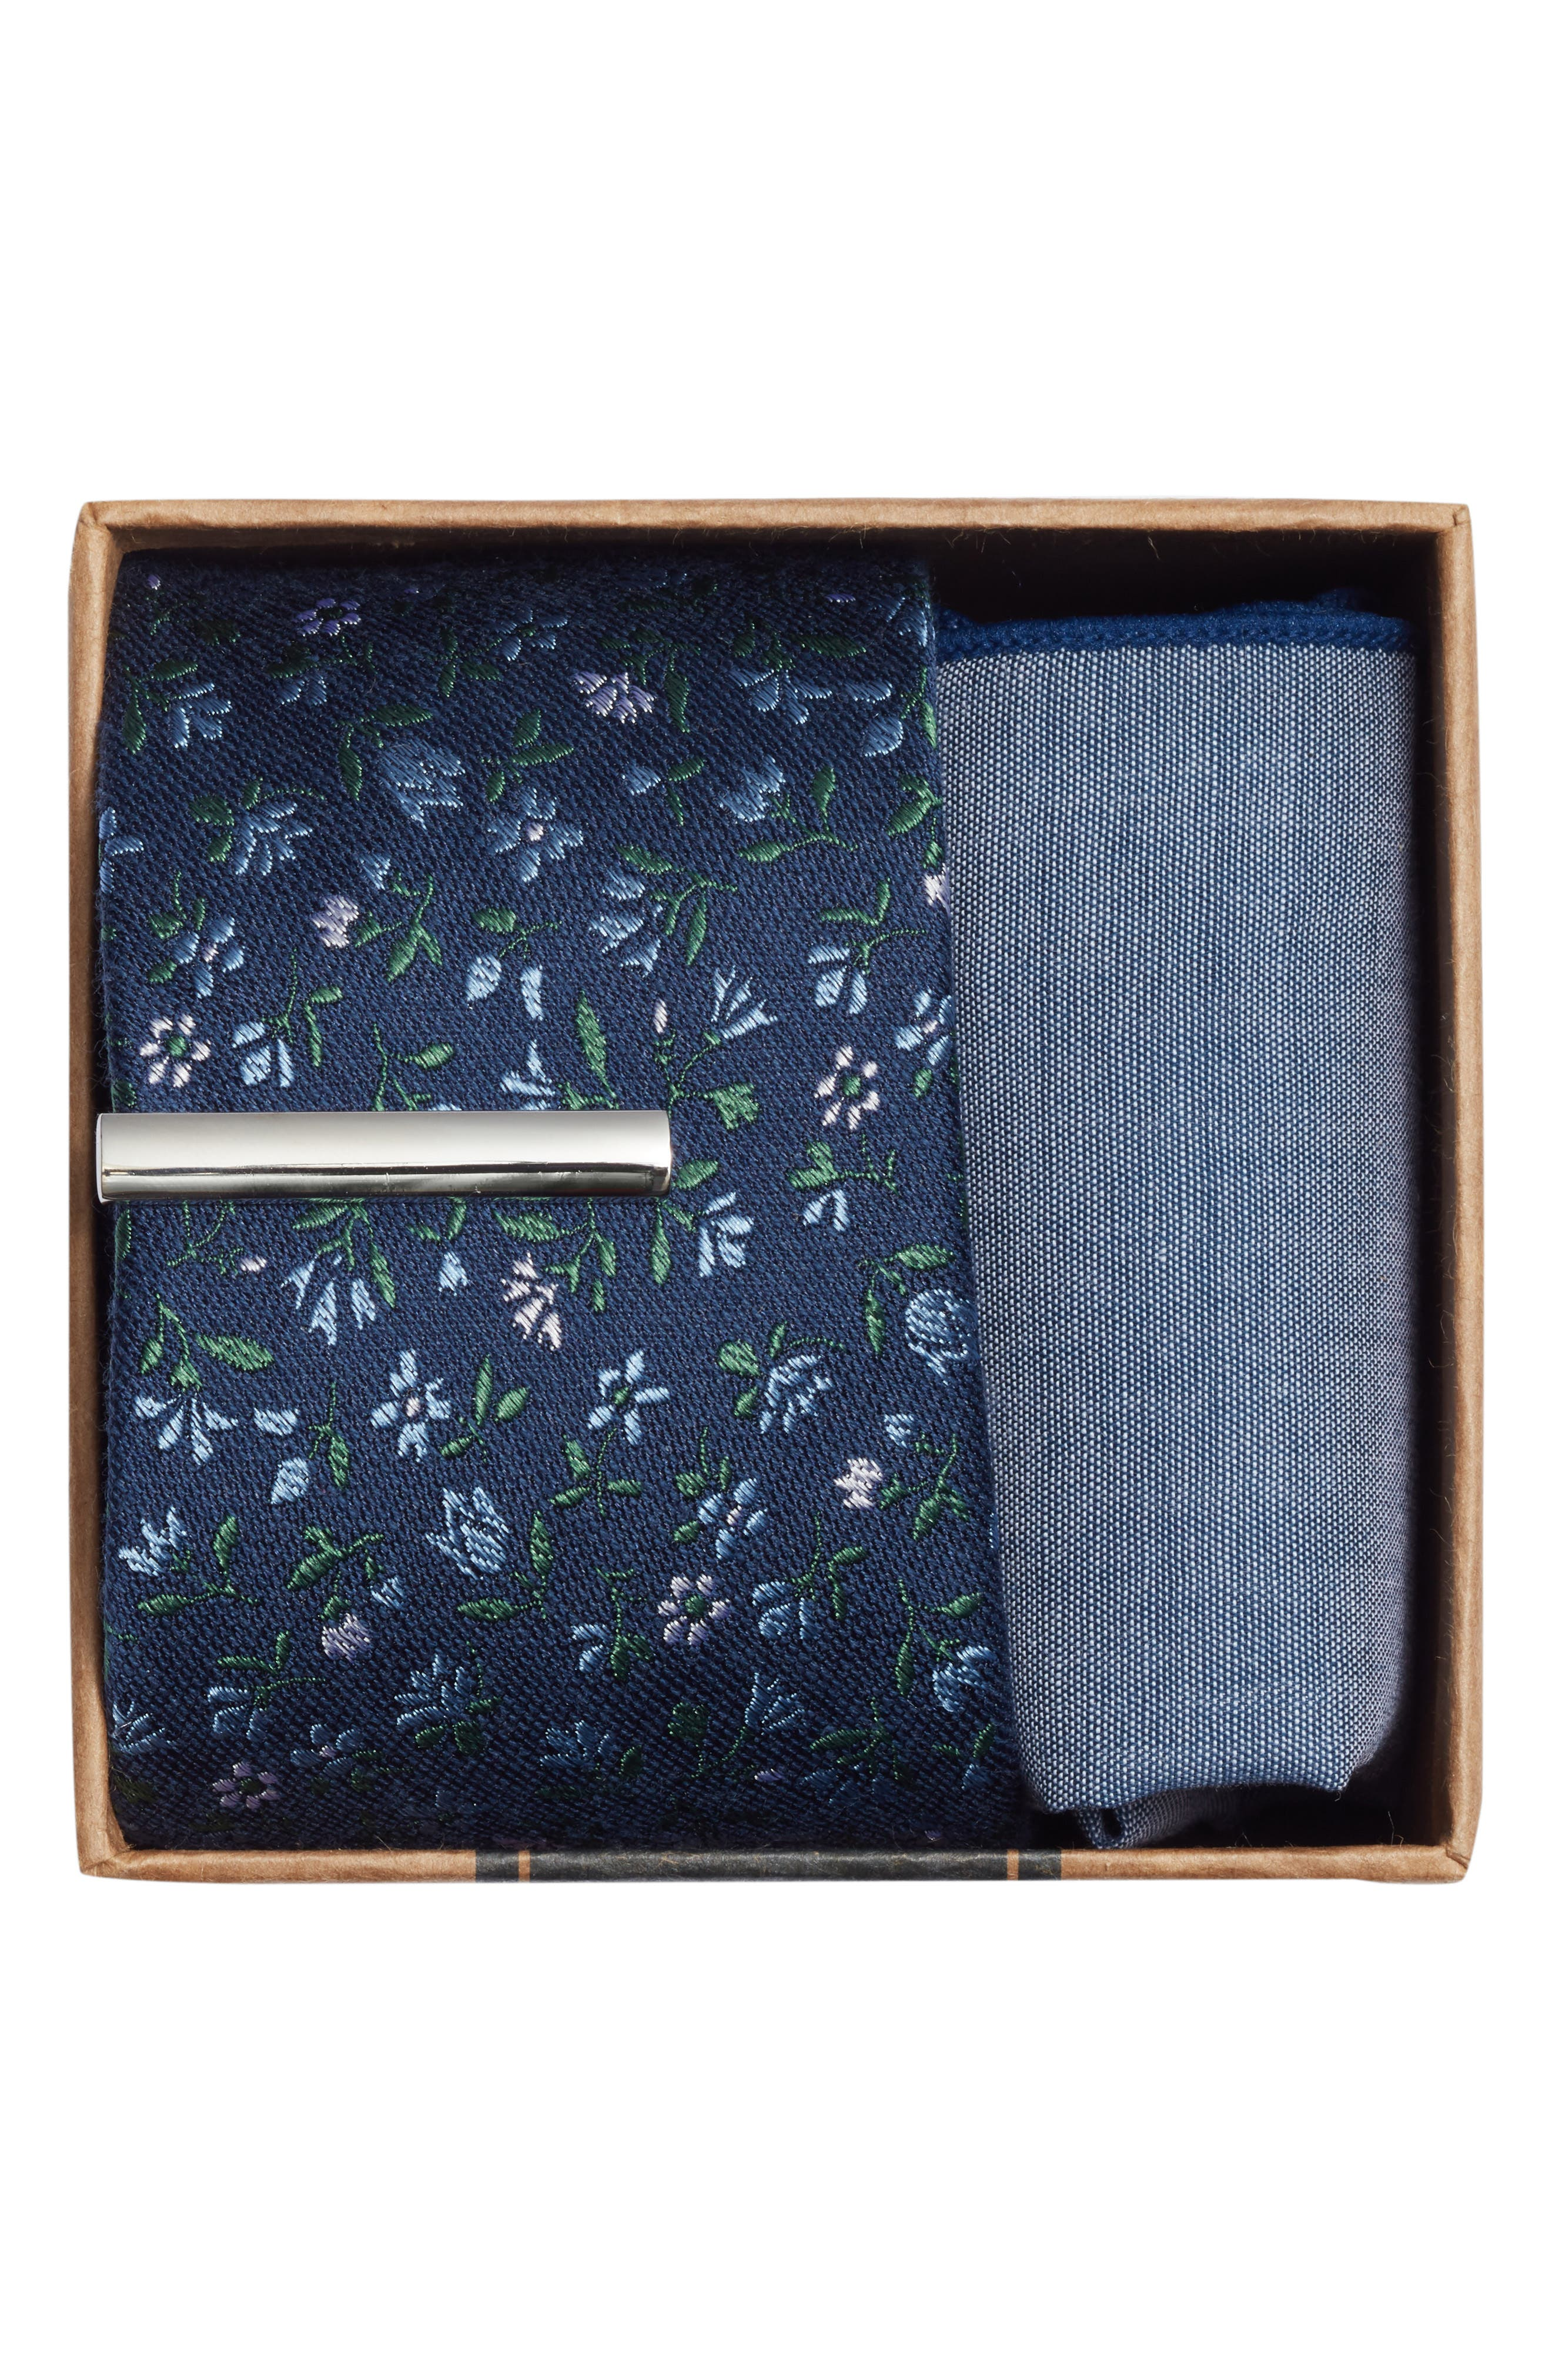 Floral Acres 3-Piece Skinny Tie Style Box,                             Alternate thumbnail 2, color,                             NAVY